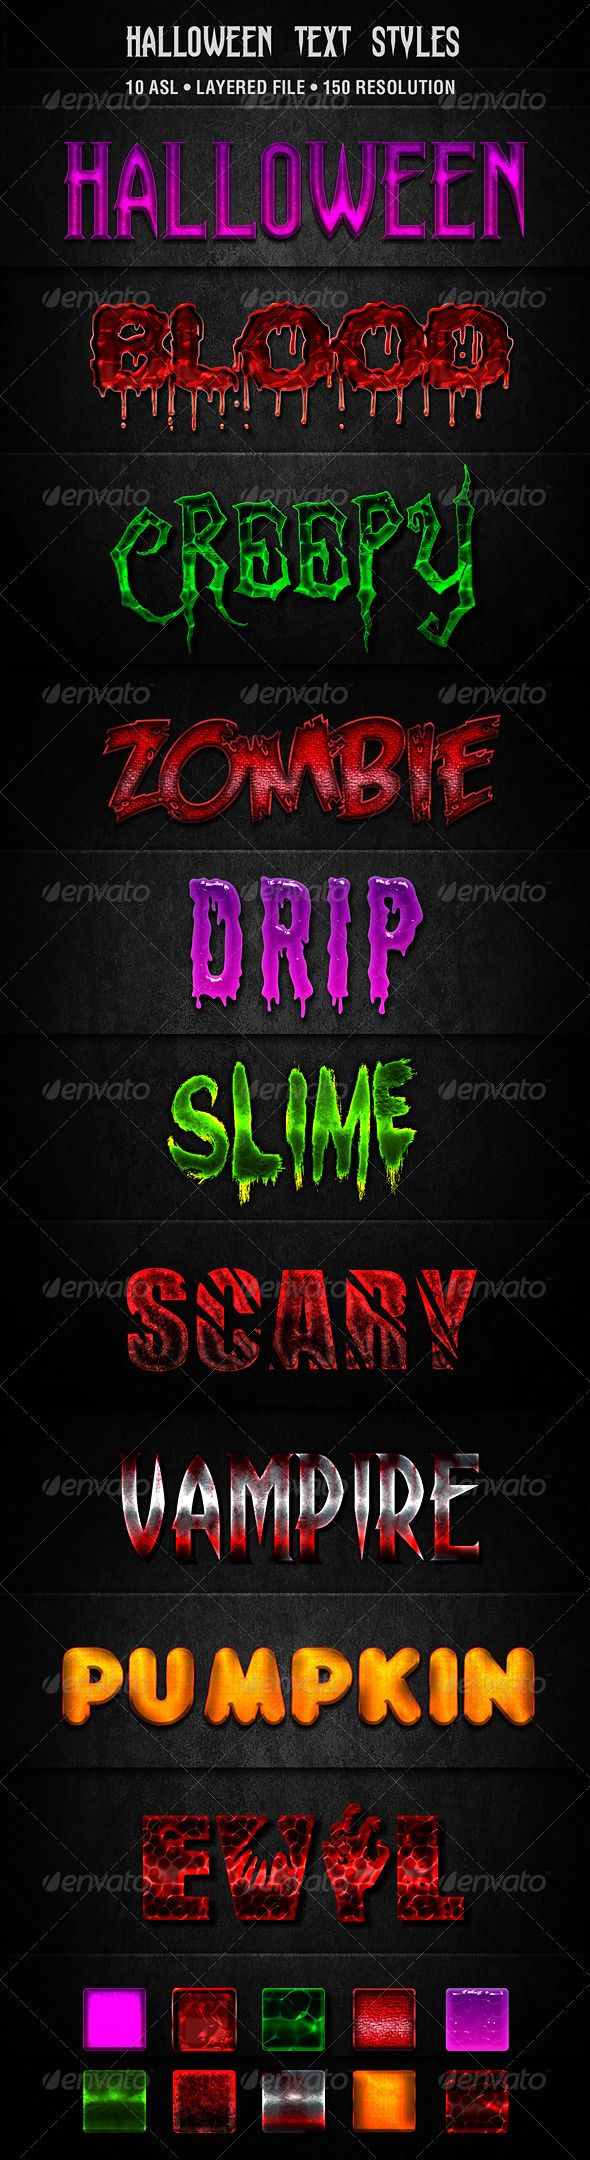 66 best add ons images on pinterest font logo photoshop and halloween text styles halloween text styles contains 10 photoshop text effect link to fonts are publicscrutiny Gallery